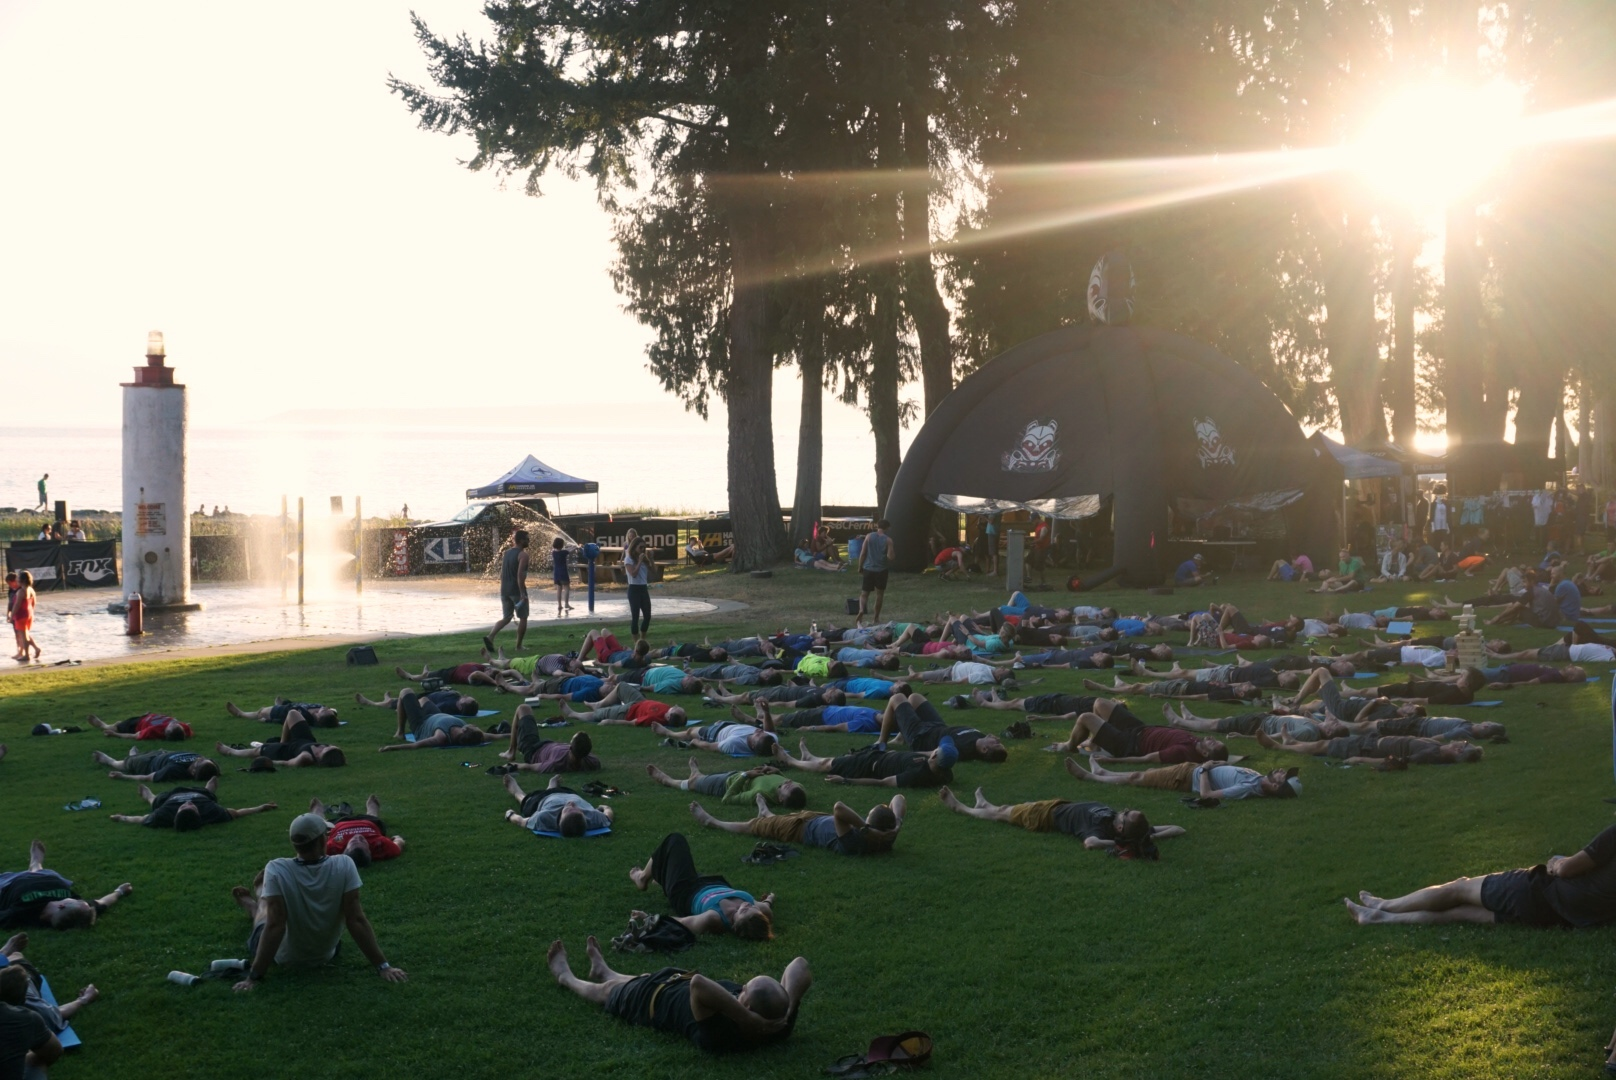 Every night, there is a yoga session at Basecamp